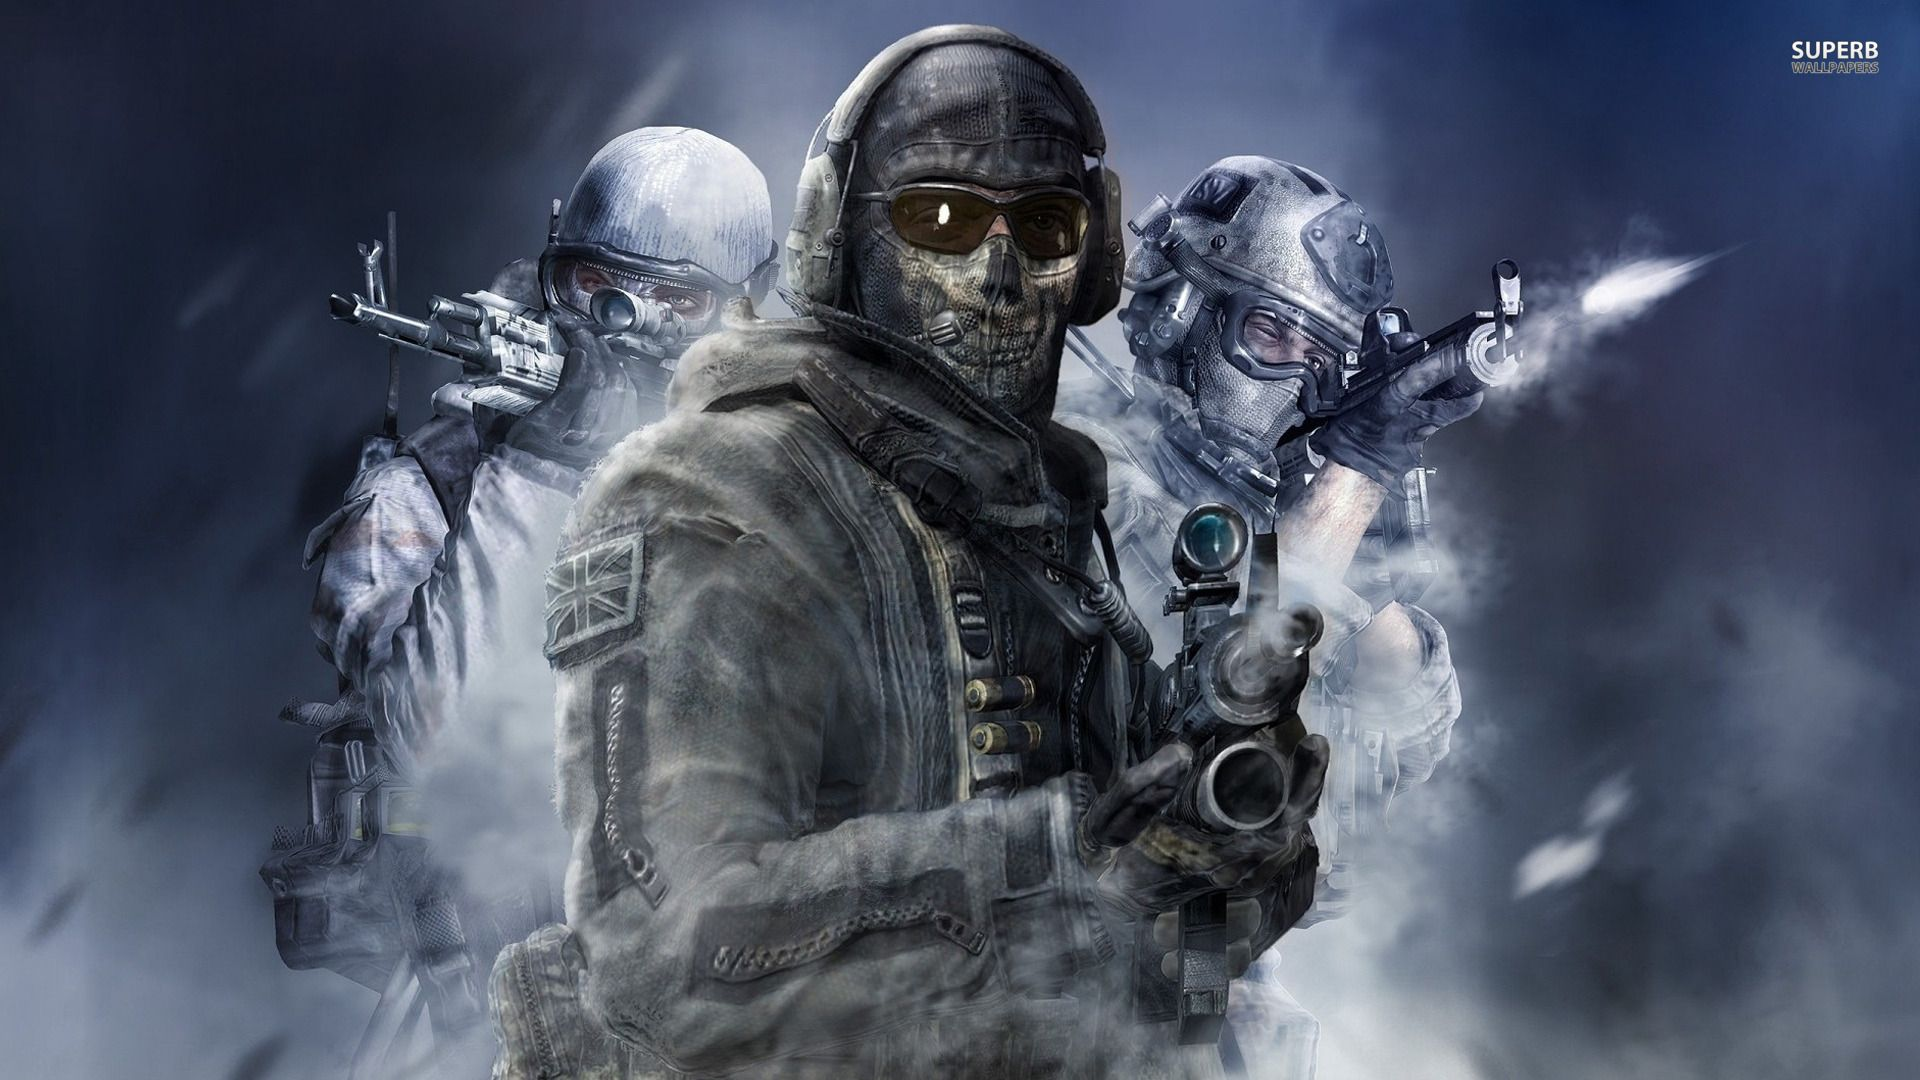 CALL OF DUTY WALLPAPER 047 | Hd Wallpaper, Blue Wallpaper ...